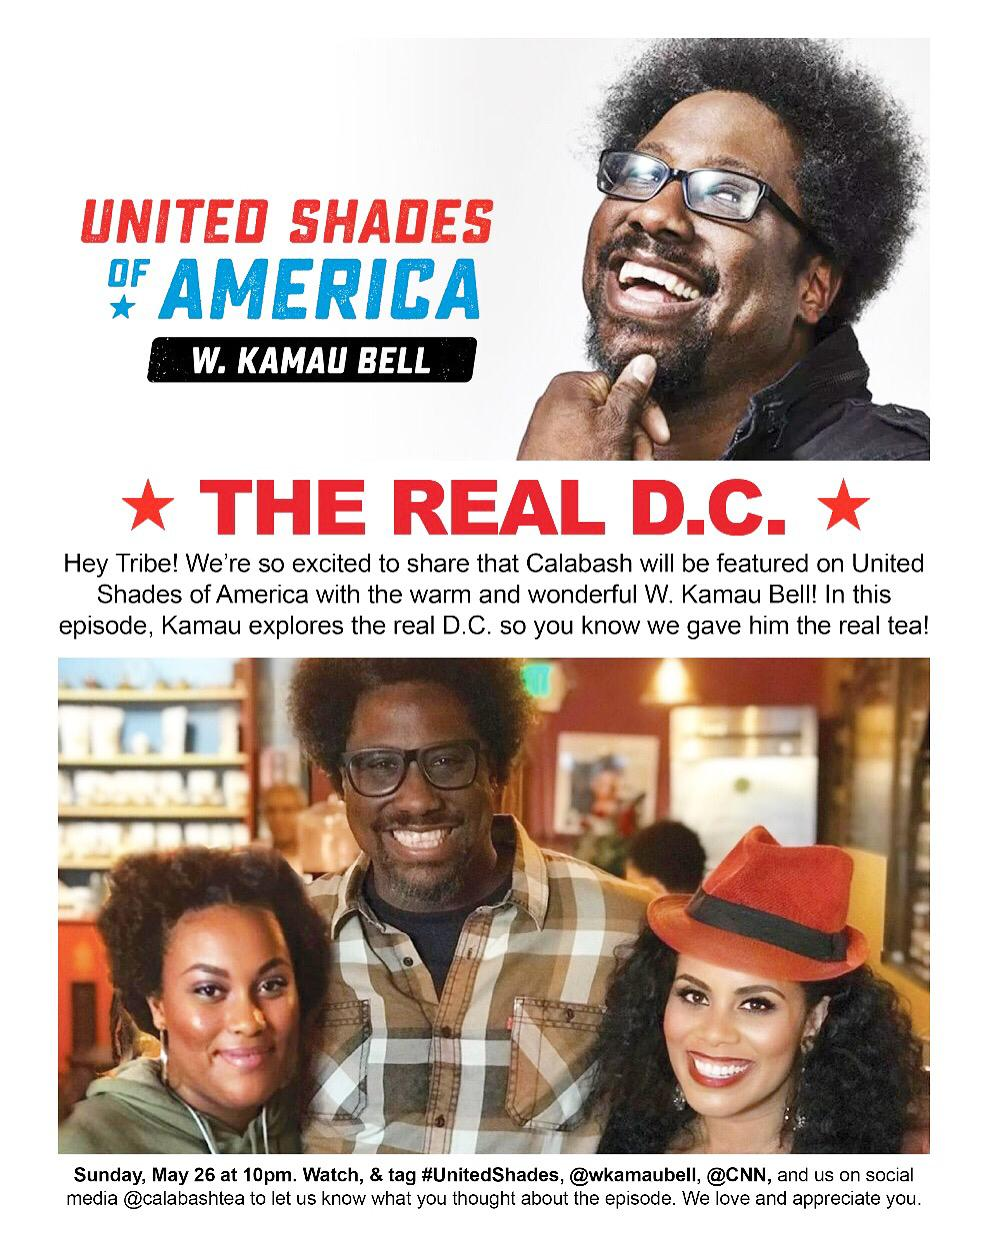 United Shades of America - Calabash featured of United Shades of America - The Real D.C.